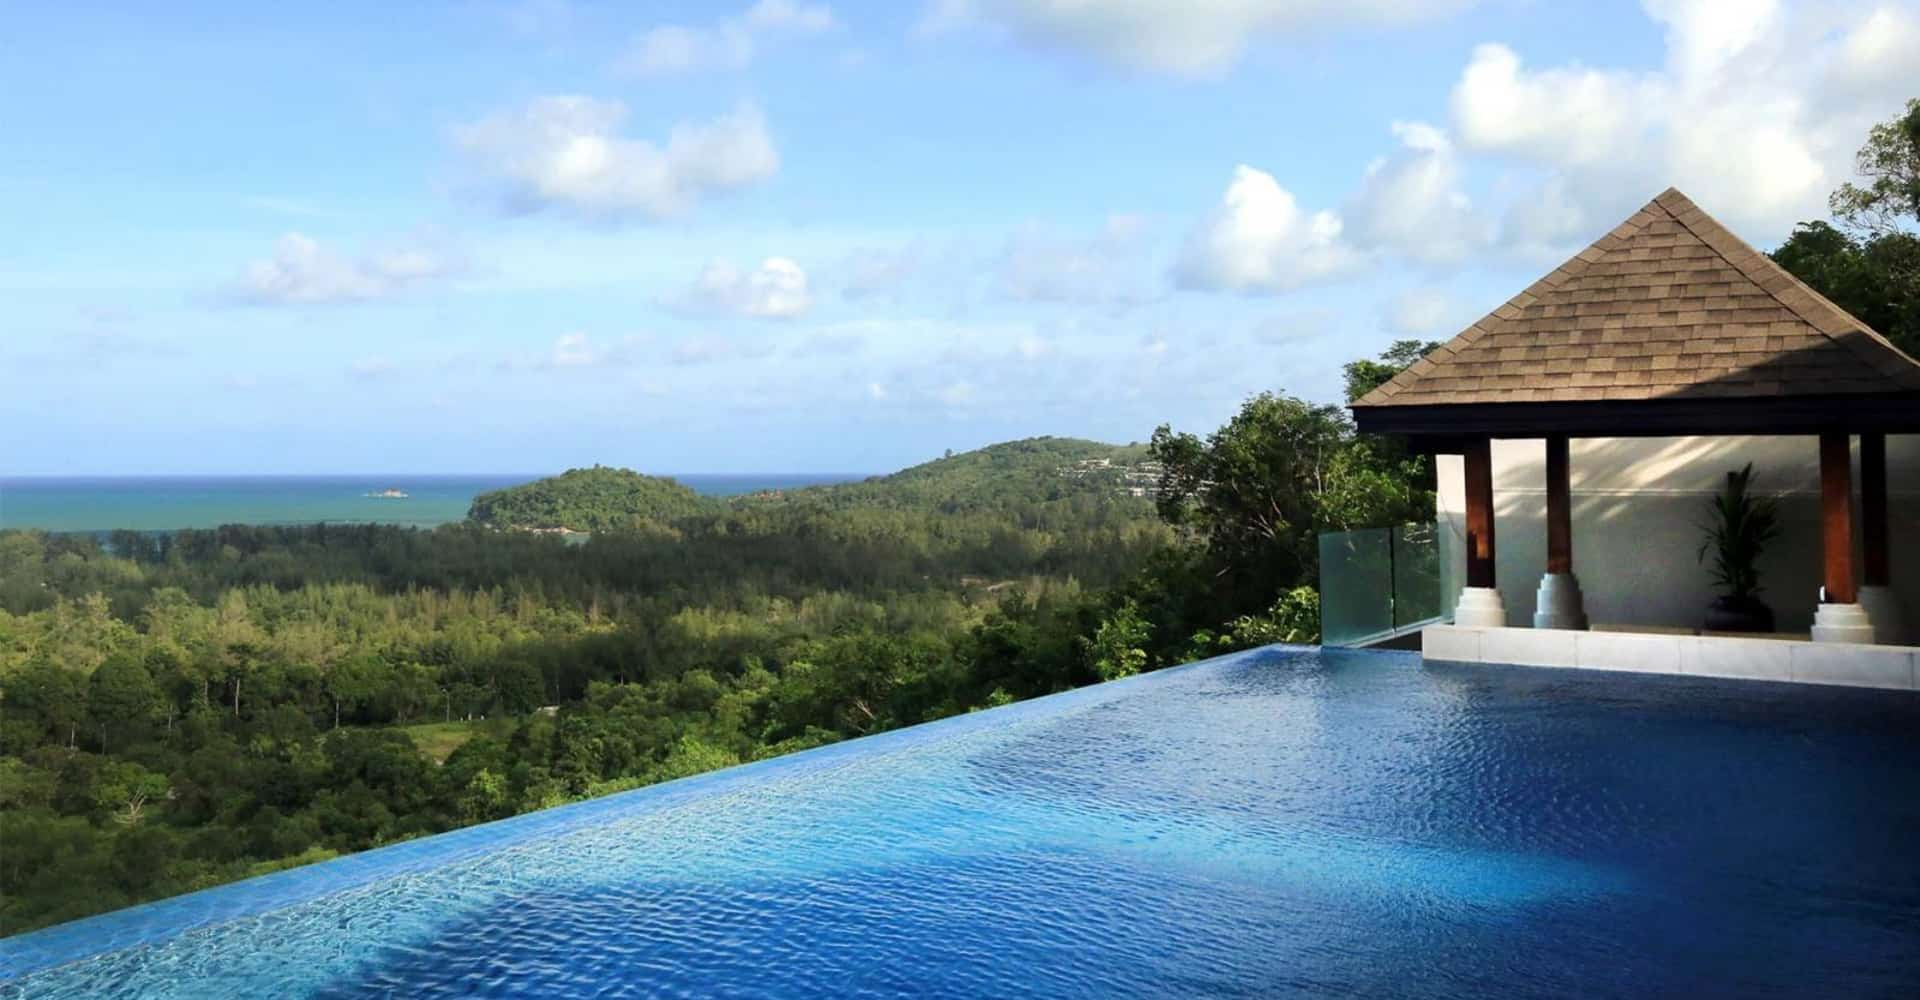 Luxury Pool Villas  - The Pavilions Phuket